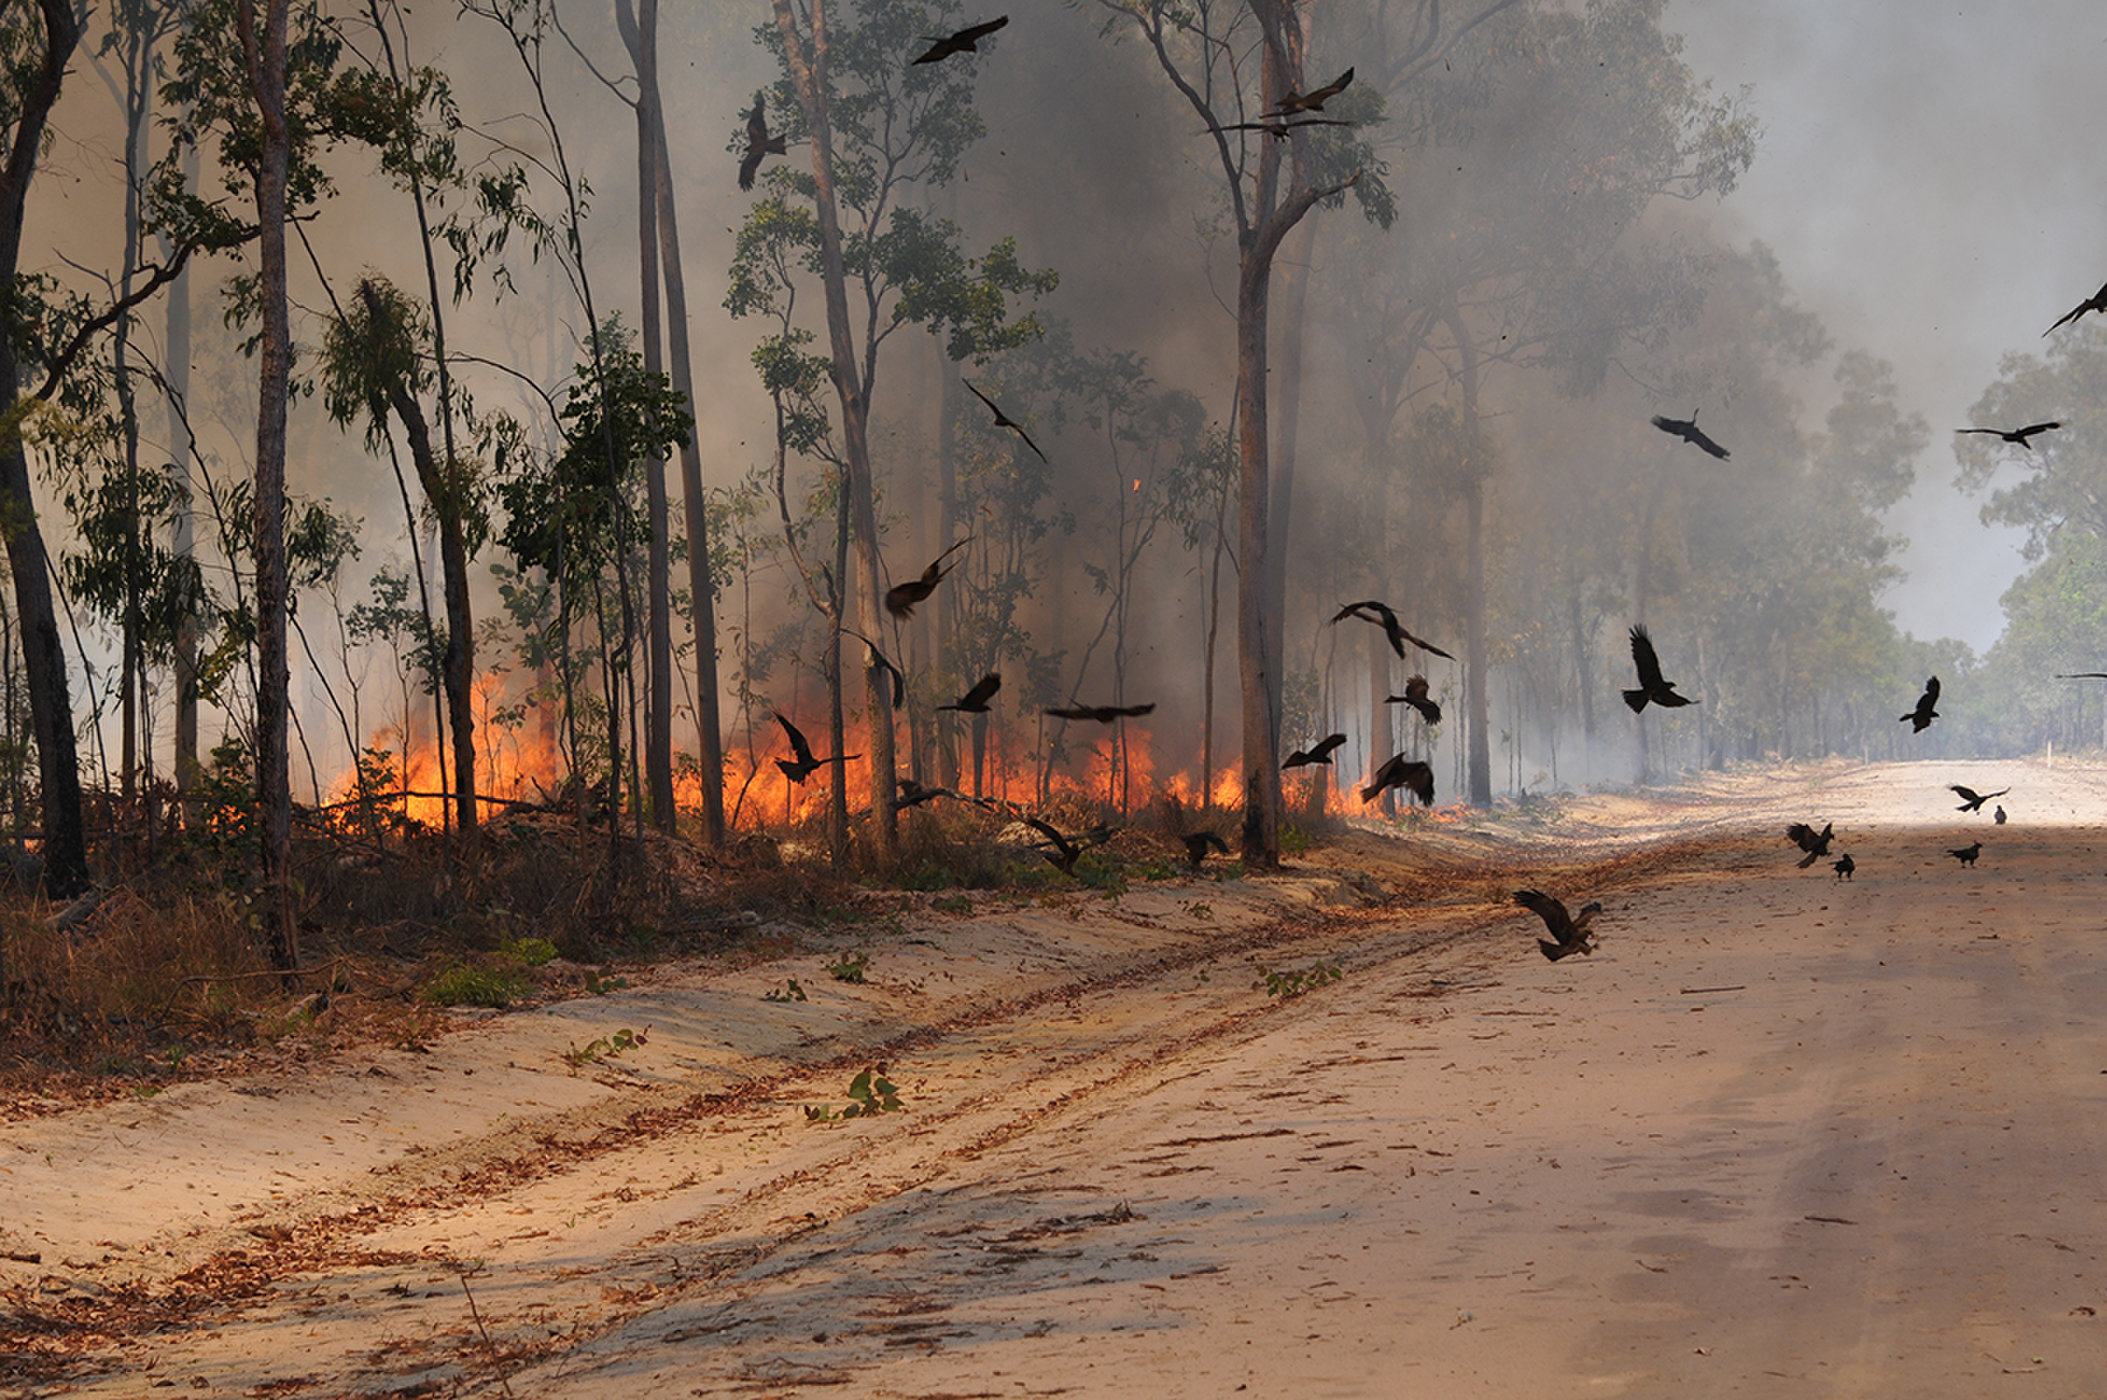 Black kites (Milvus migrans) circle near a roadway during a fire on the Cape York Peninsula in Queensland, Australia. Credit: Dick Eussen.